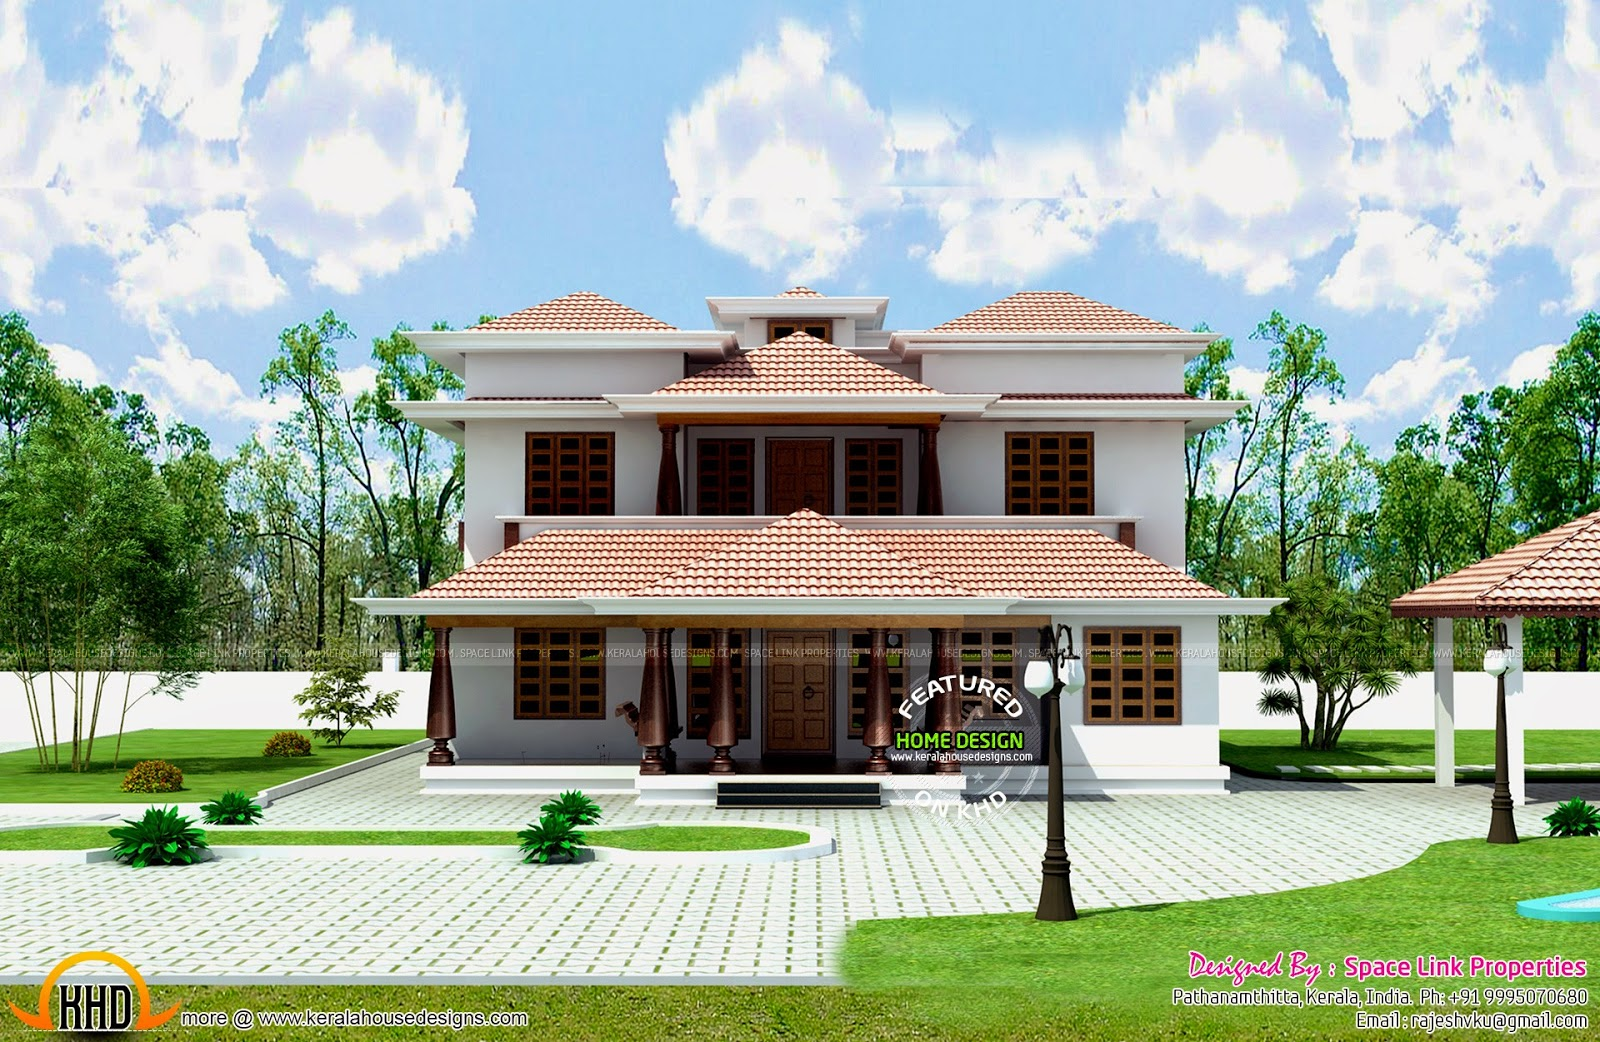 Typical kerala traditional house kerala home design and for Kerala house plans and designs